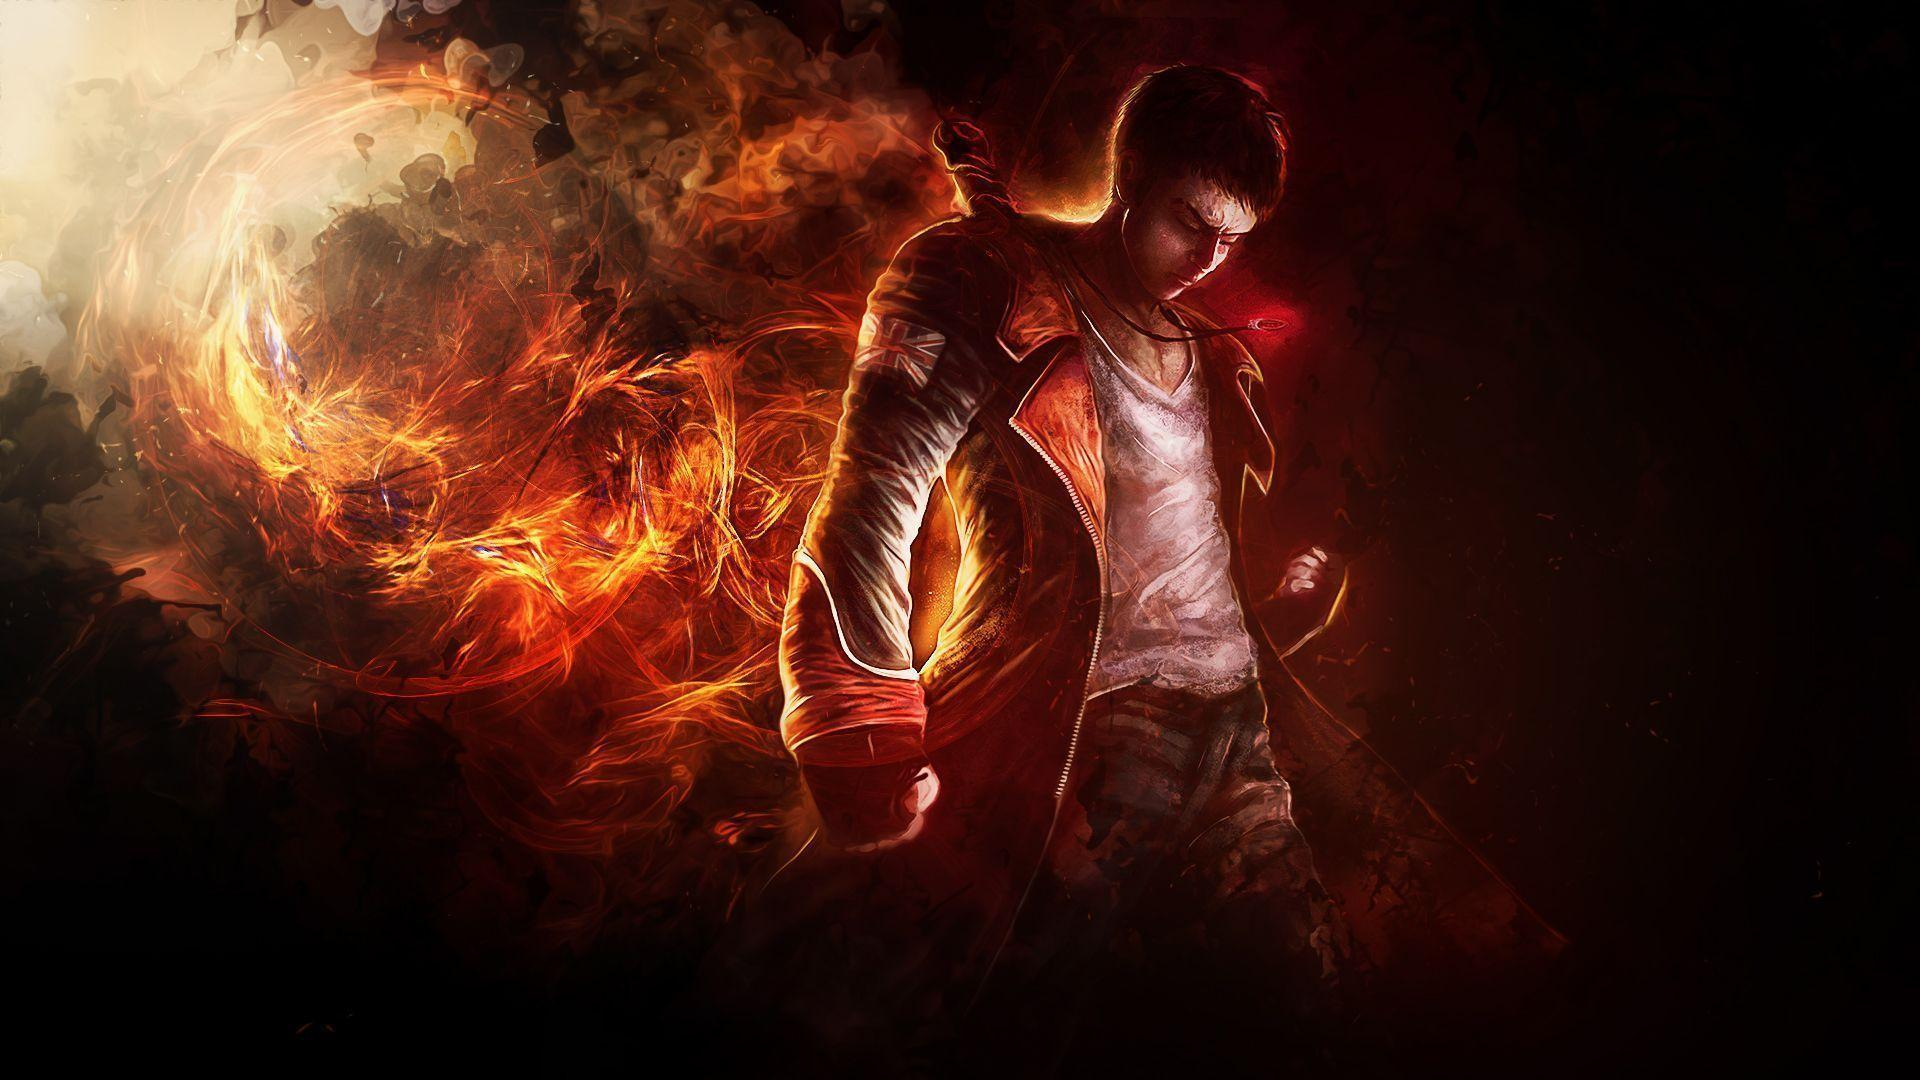 Devil May Cry HD Wallpapers 1920x1080